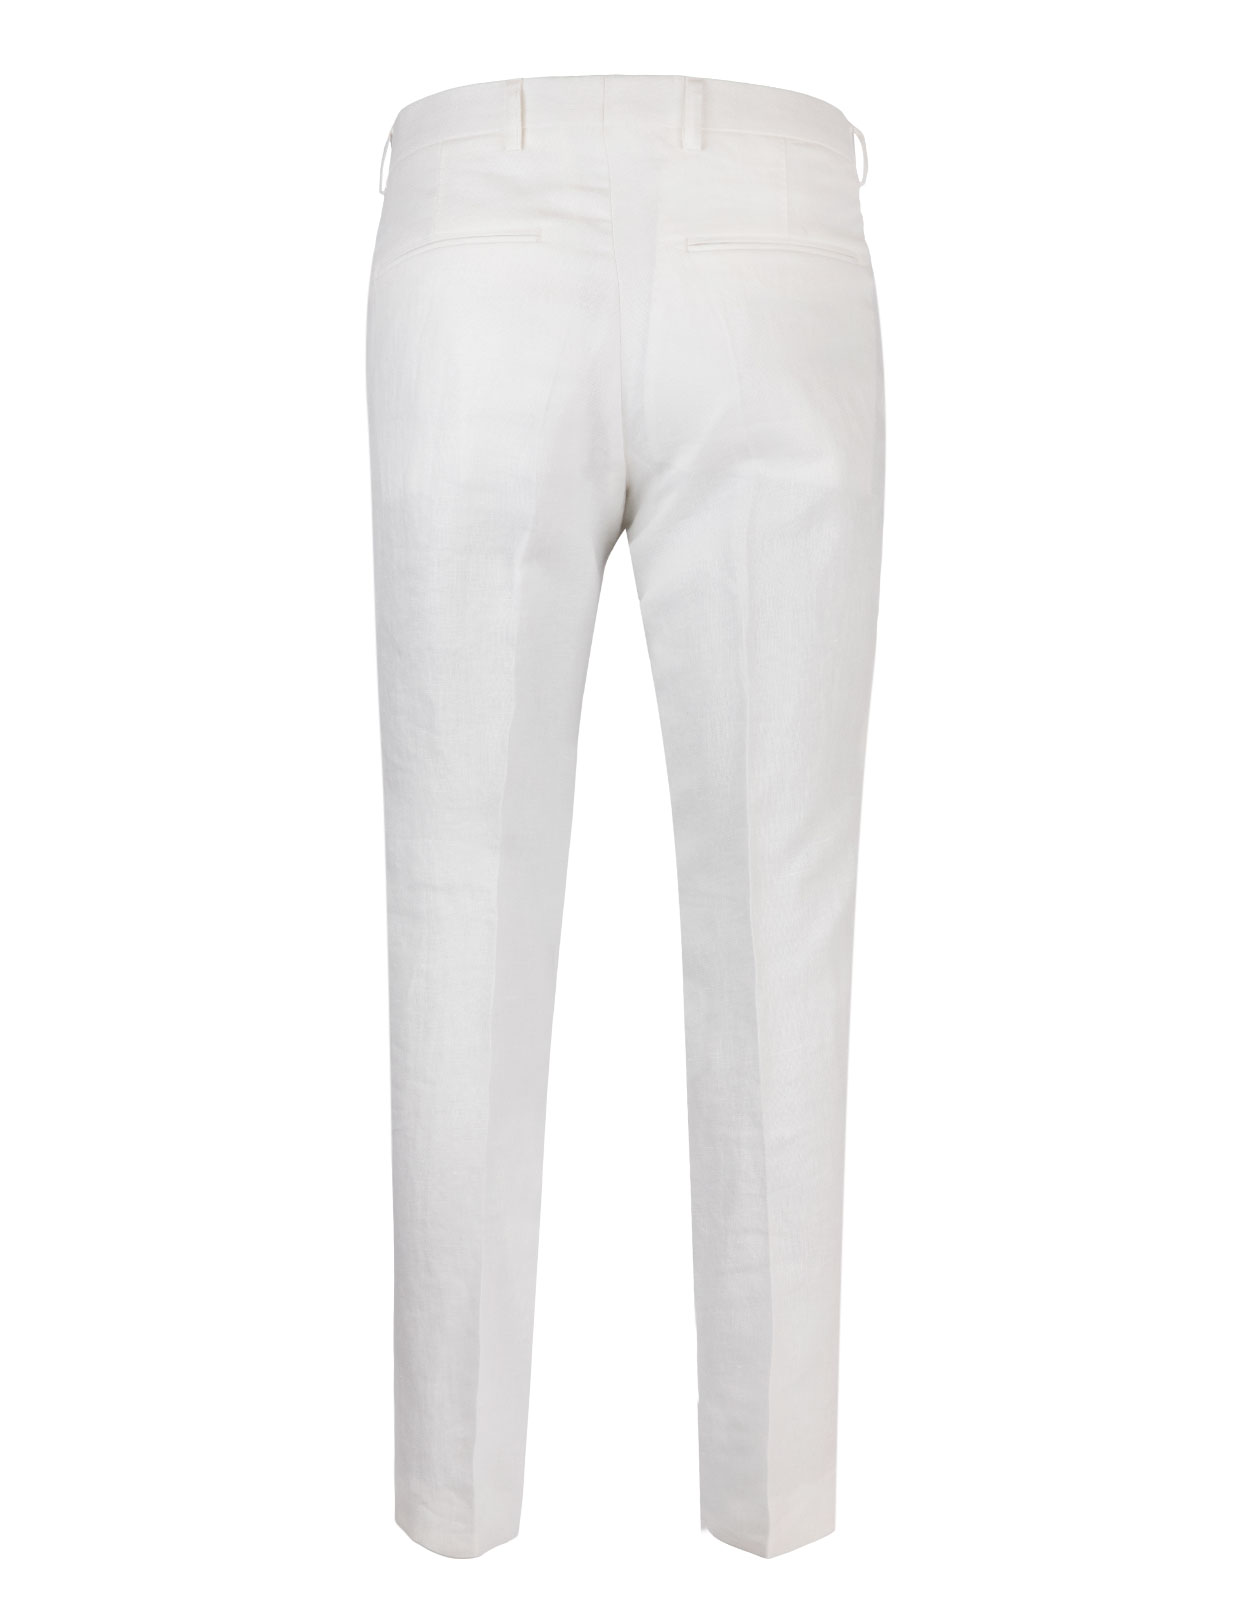 Diego Regular Fit Trouser Mix & Match White